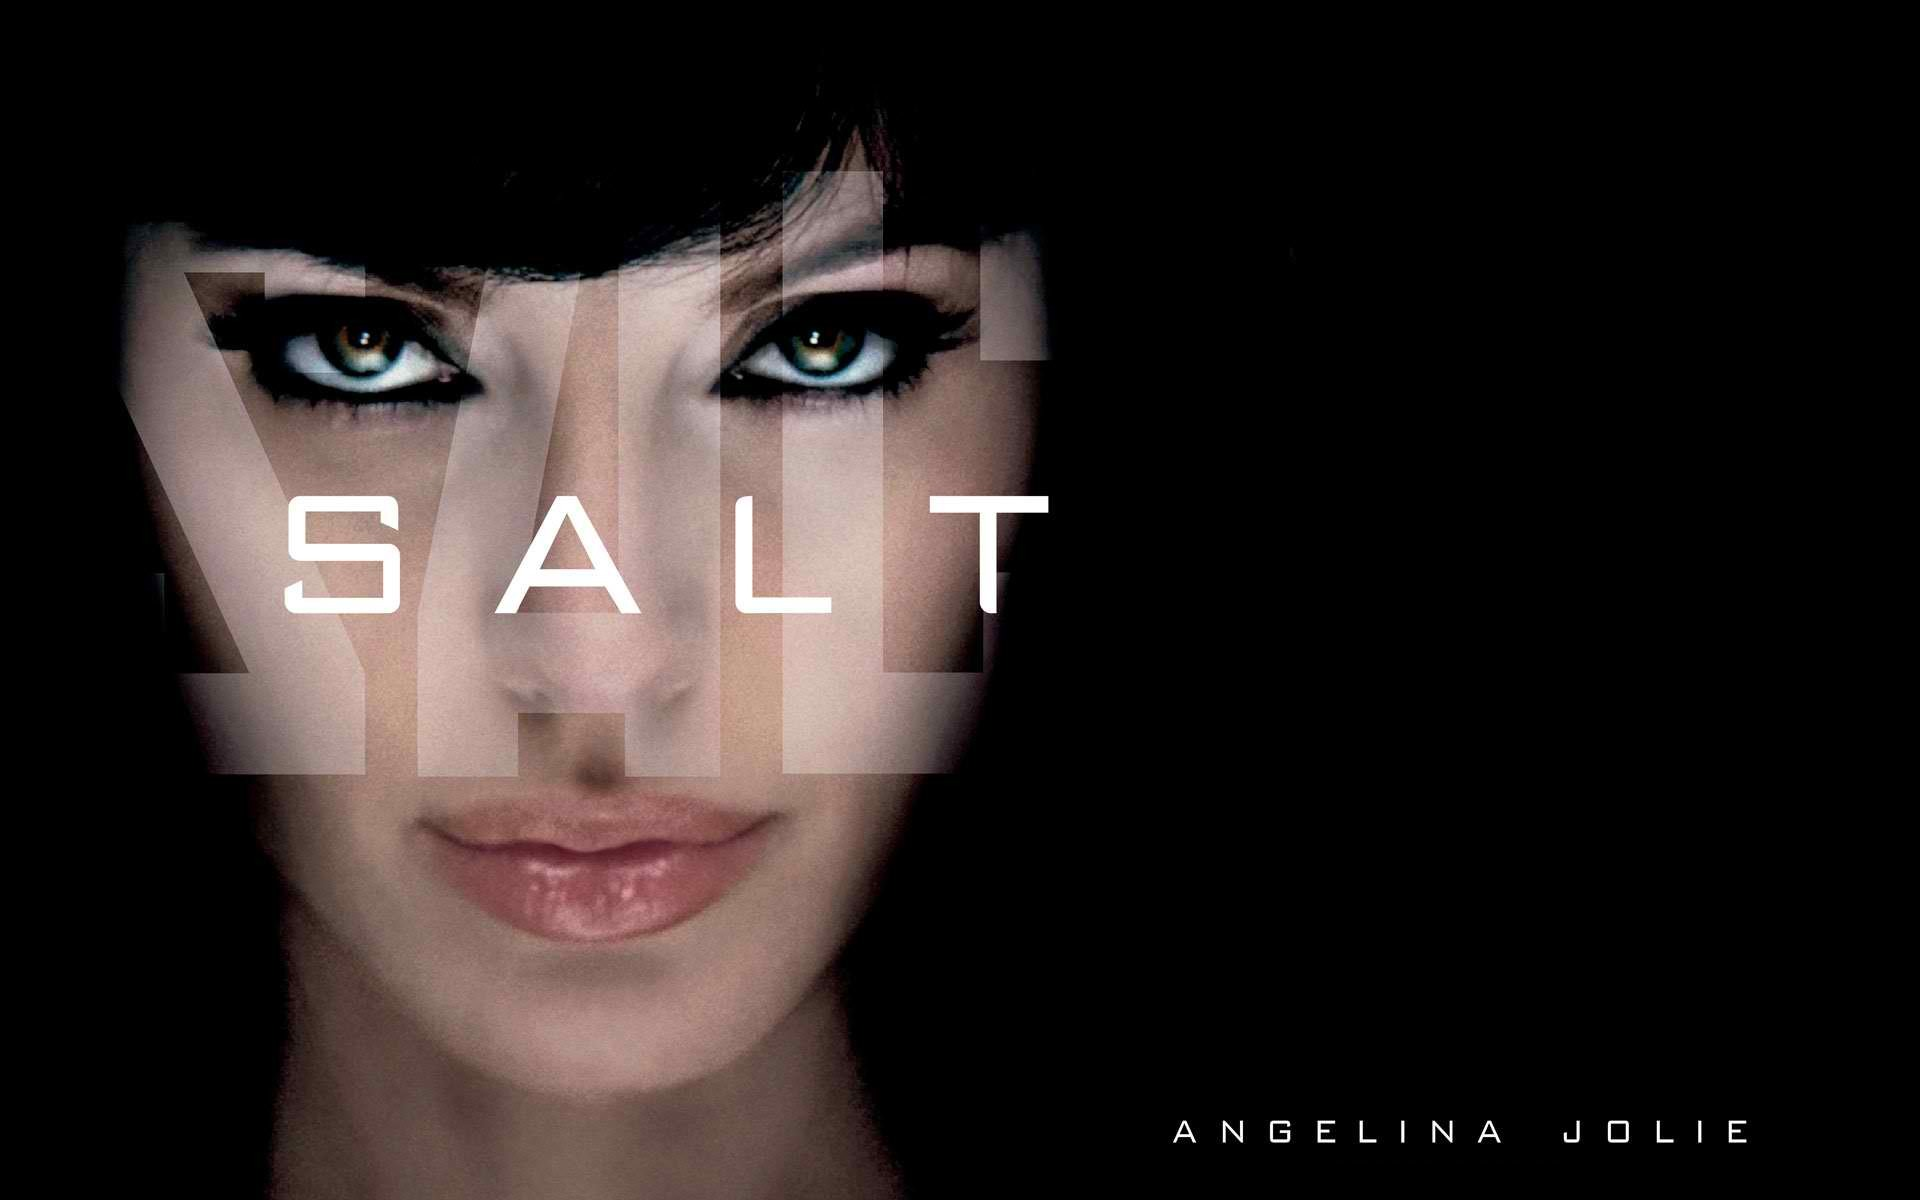 Angelina jolie Salt Movie HD Wallpaper